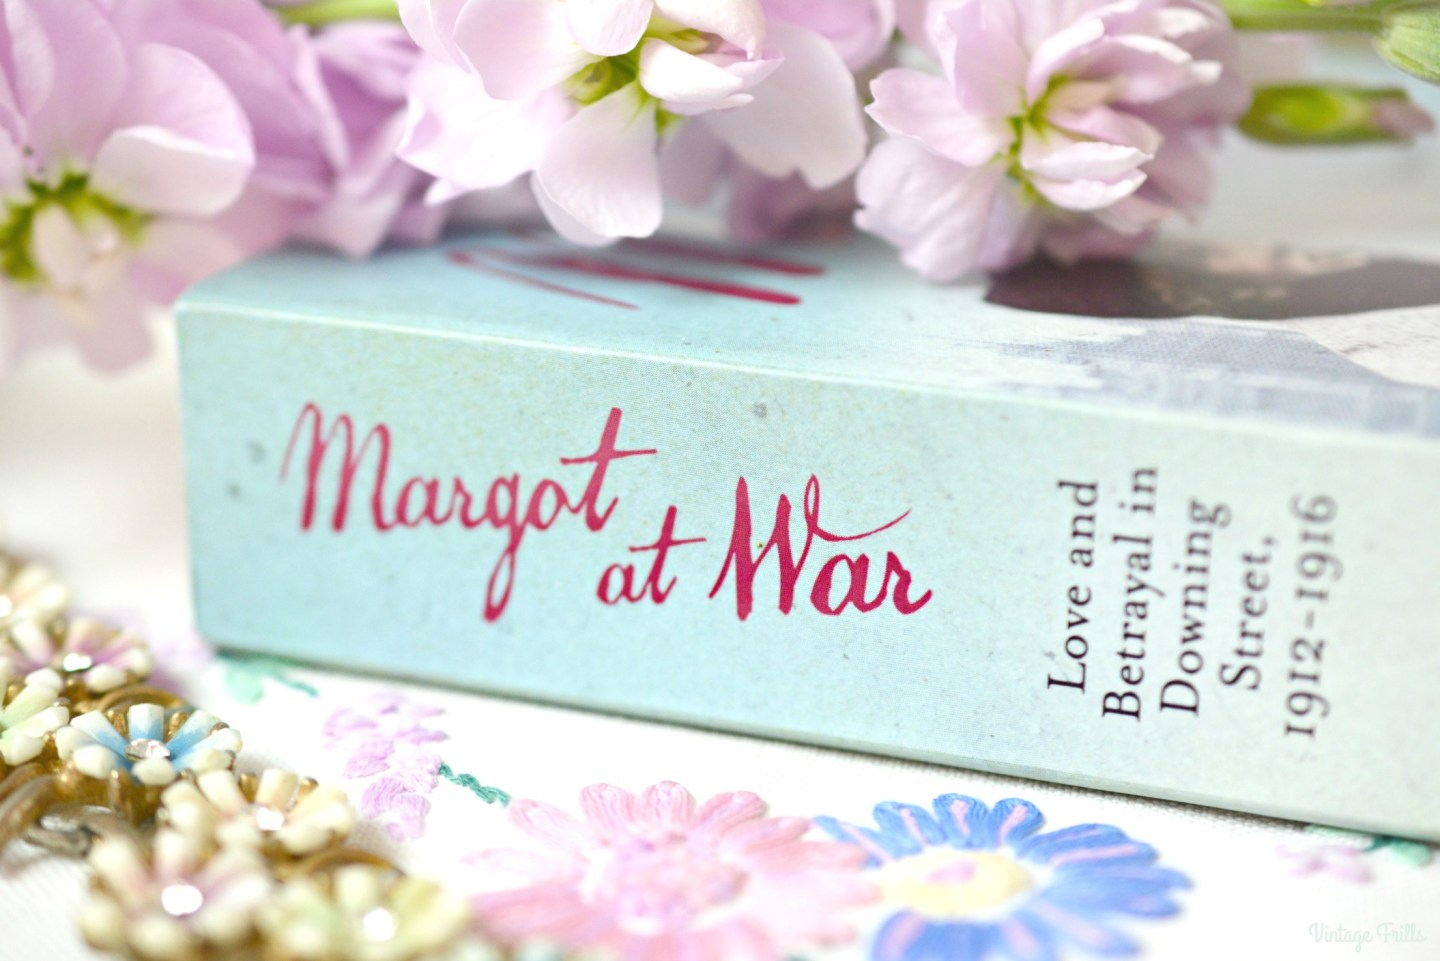 Margot at War Review